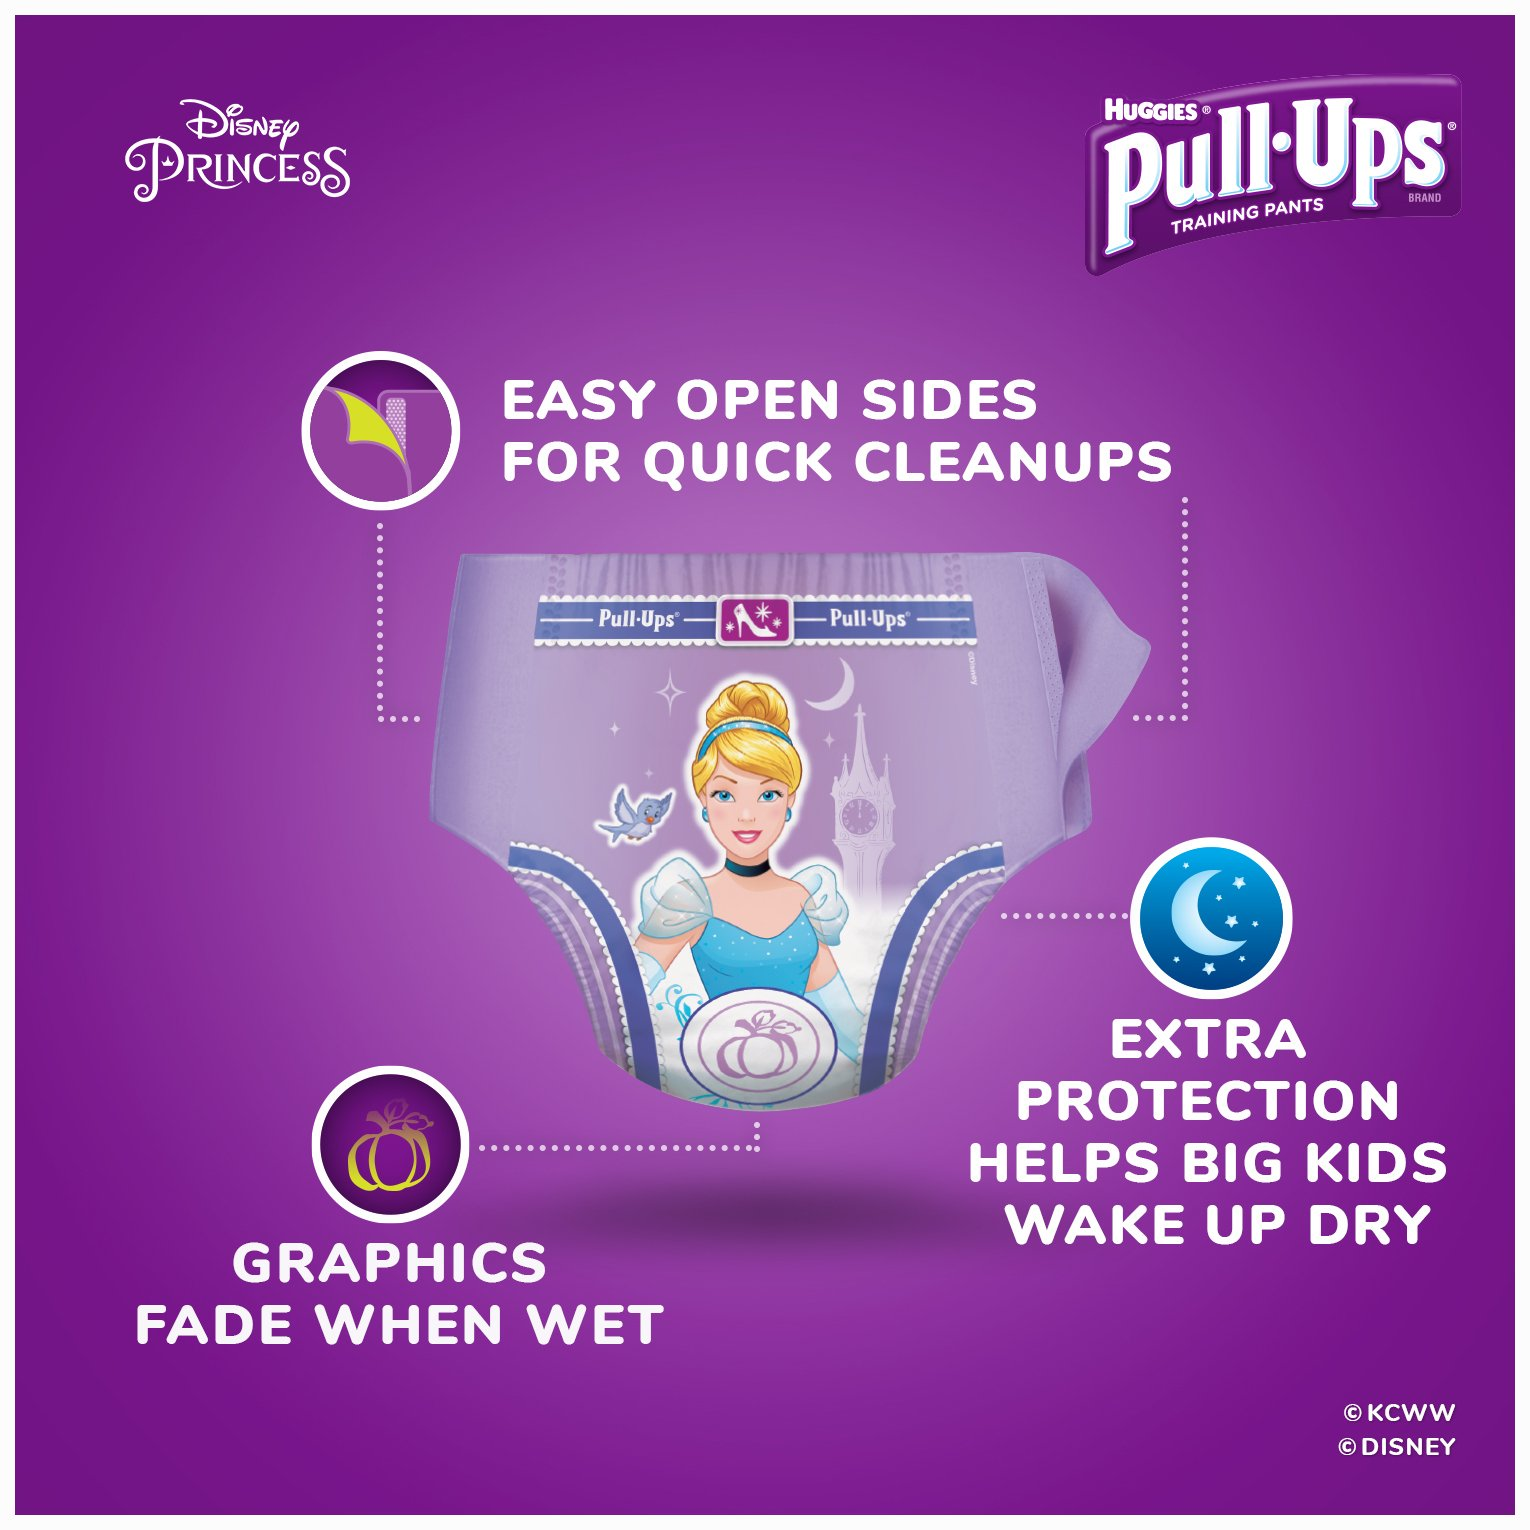 Pull-Ups Night-Time Potty Training Pants for Girls, 2T-3T (18-34 lb.), 23 Ct.- Pack of 4 (Packaging May Vary) by Pull-Ups (Image #2)